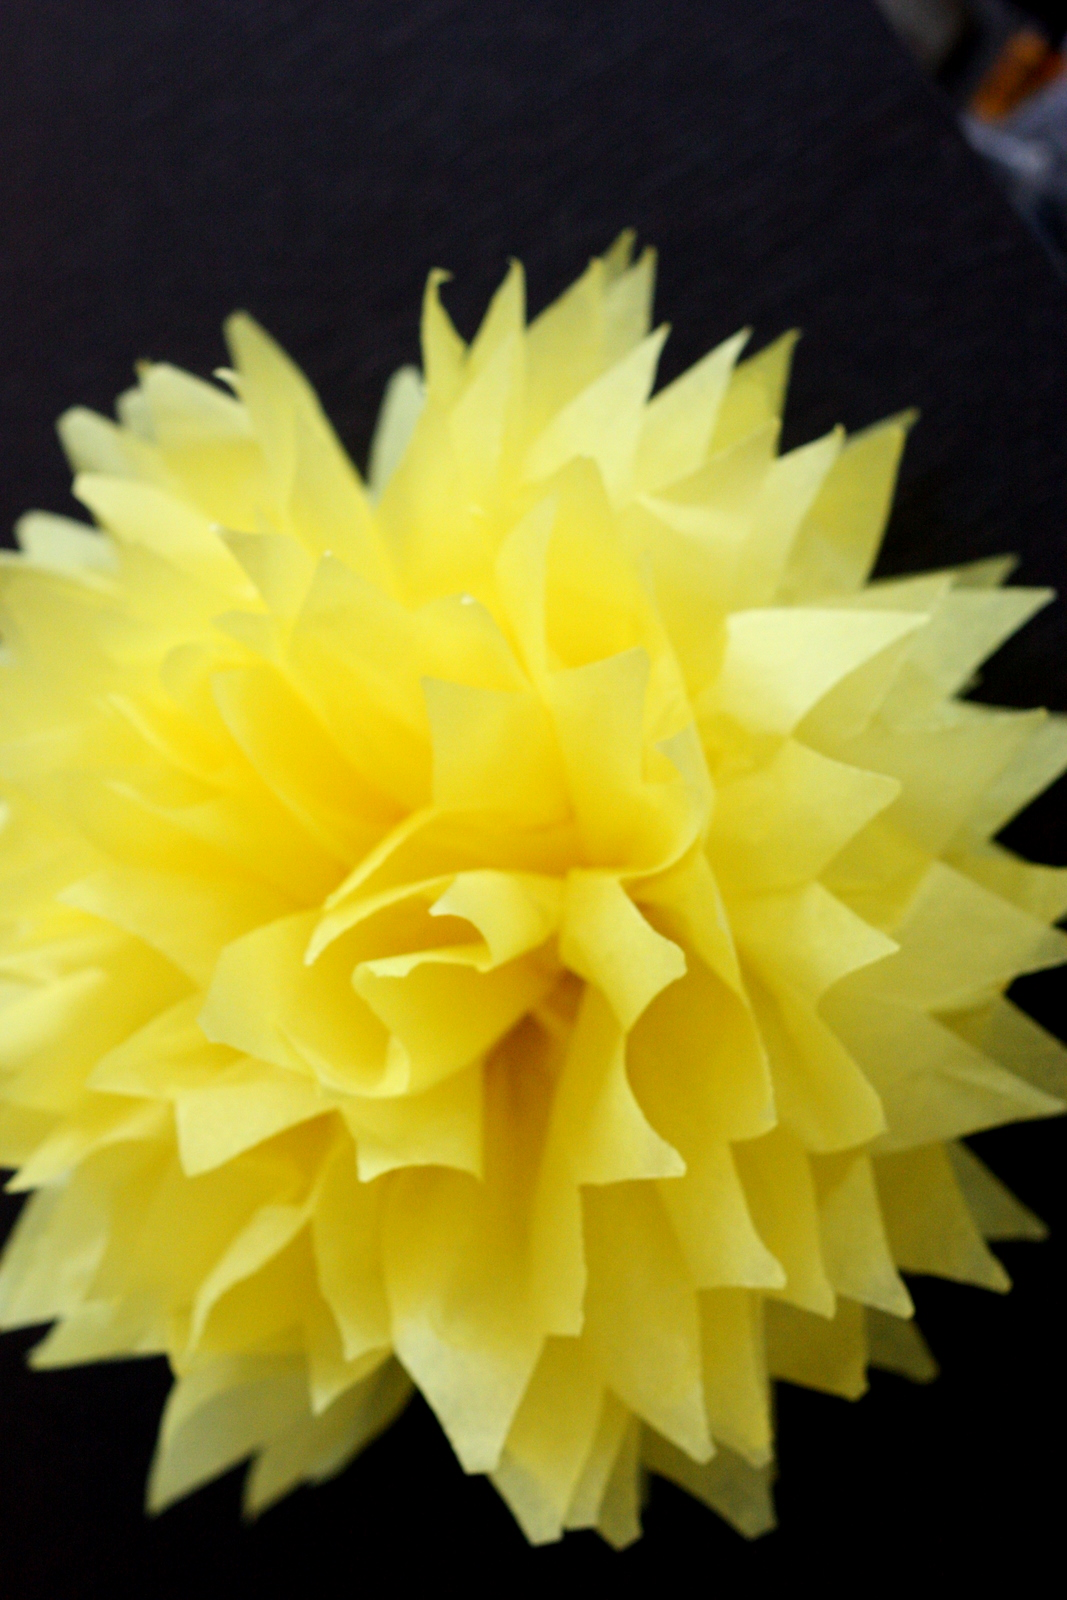 Baking love diy tissue paper flowerspom poms and girl crushing diy tissue paper flowerspom poms and girl crushing on martha mightylinksfo